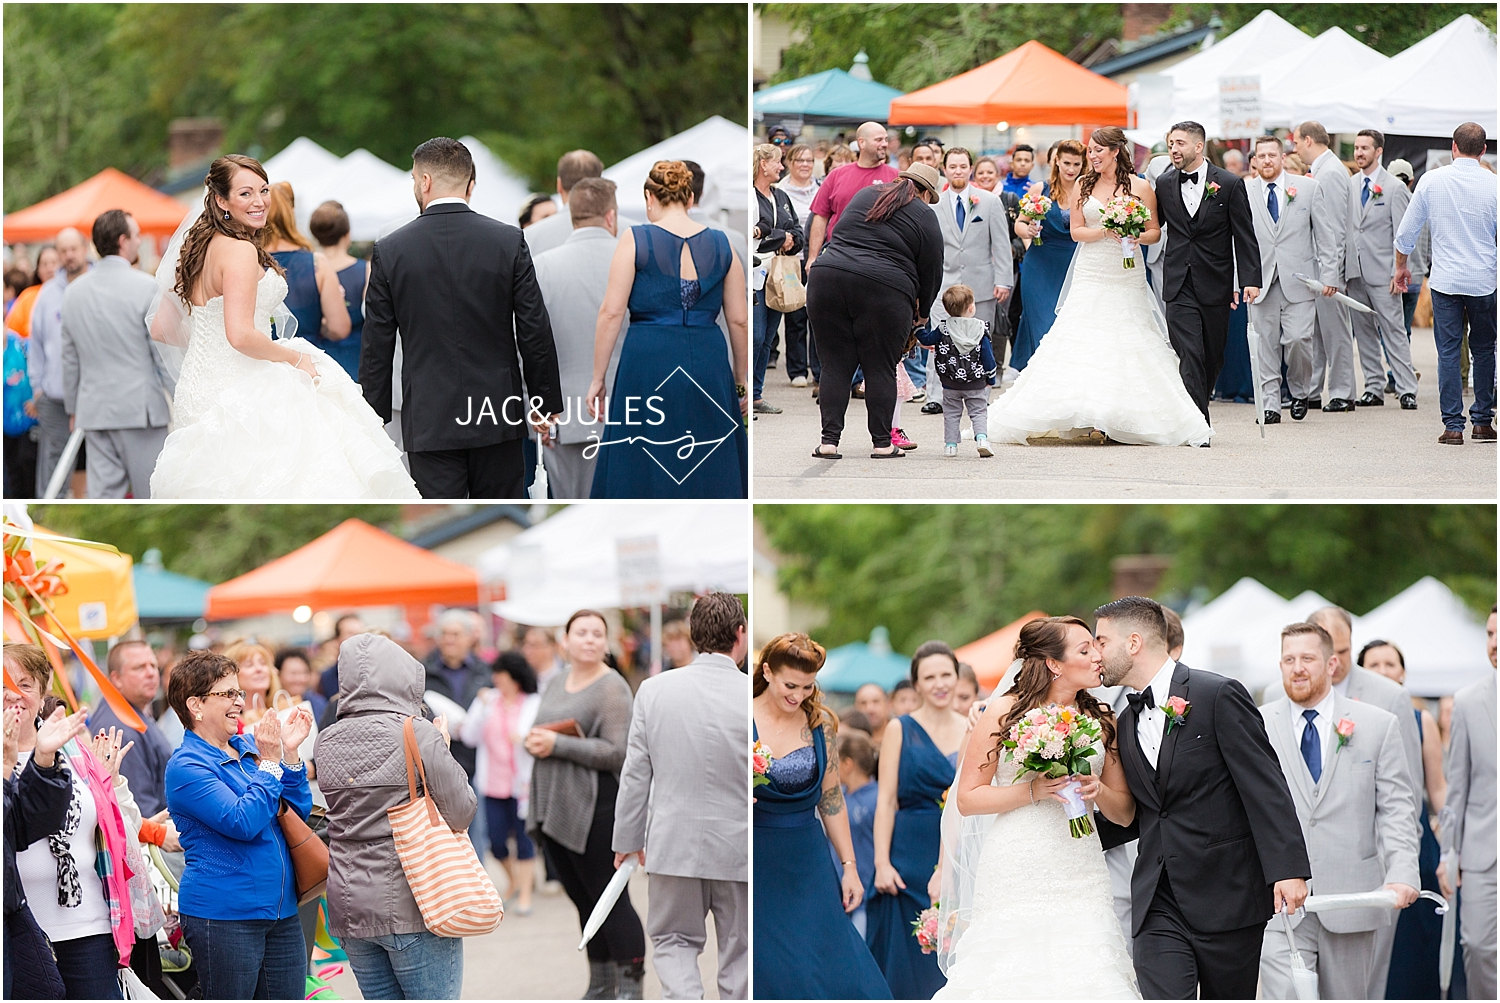 jacnjules photograph a fun bridal party at a festival in Smithville NJ for a wedding